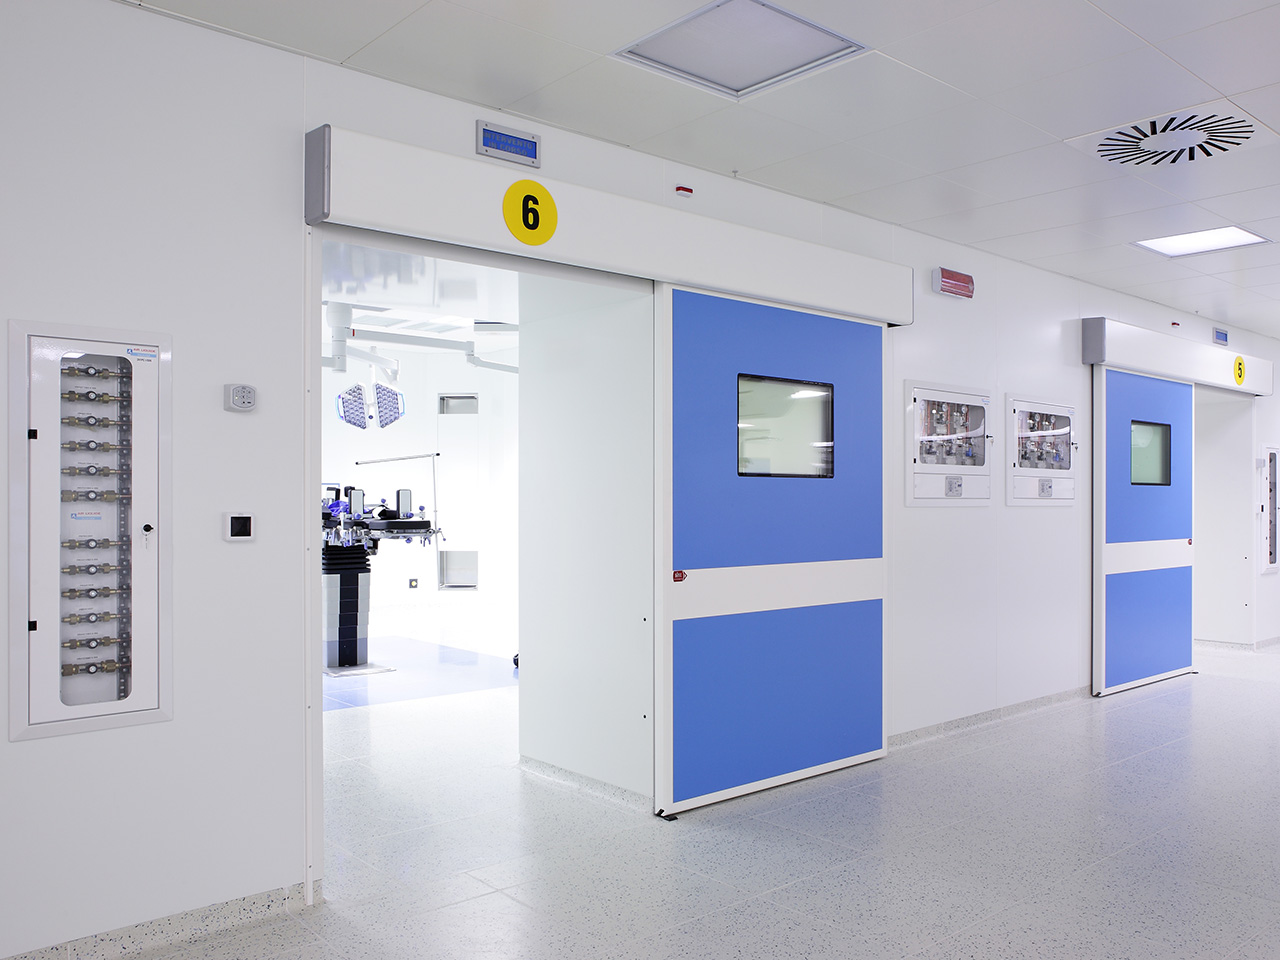 Development of OR, ICU & ER WARDS hospital areas - Conegliano Italy 10